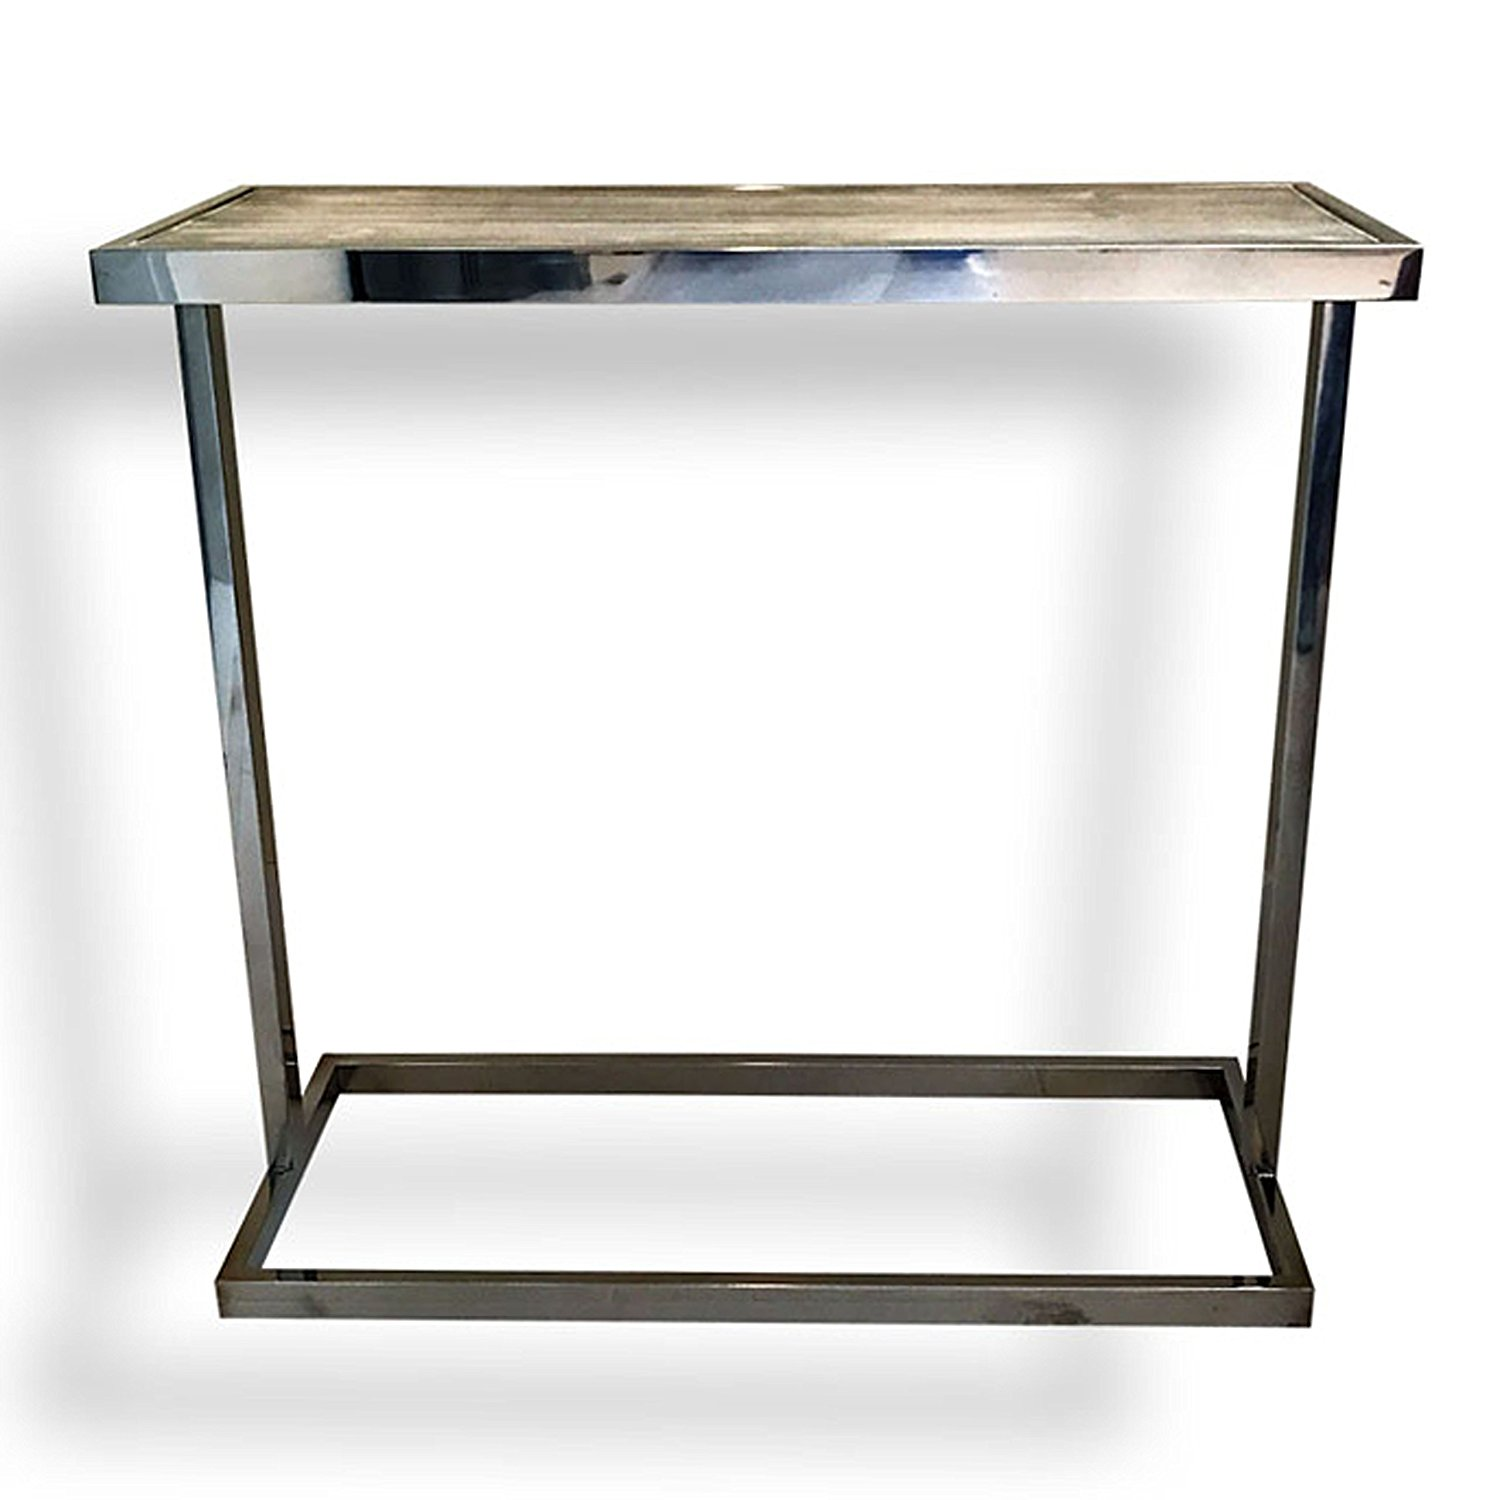 Whole House Worlds The Crosby Street Console Side Table, Polished Stainless Steel with Bleached Driftwood-Gray Pine Inset, 27 Inches Tall, By